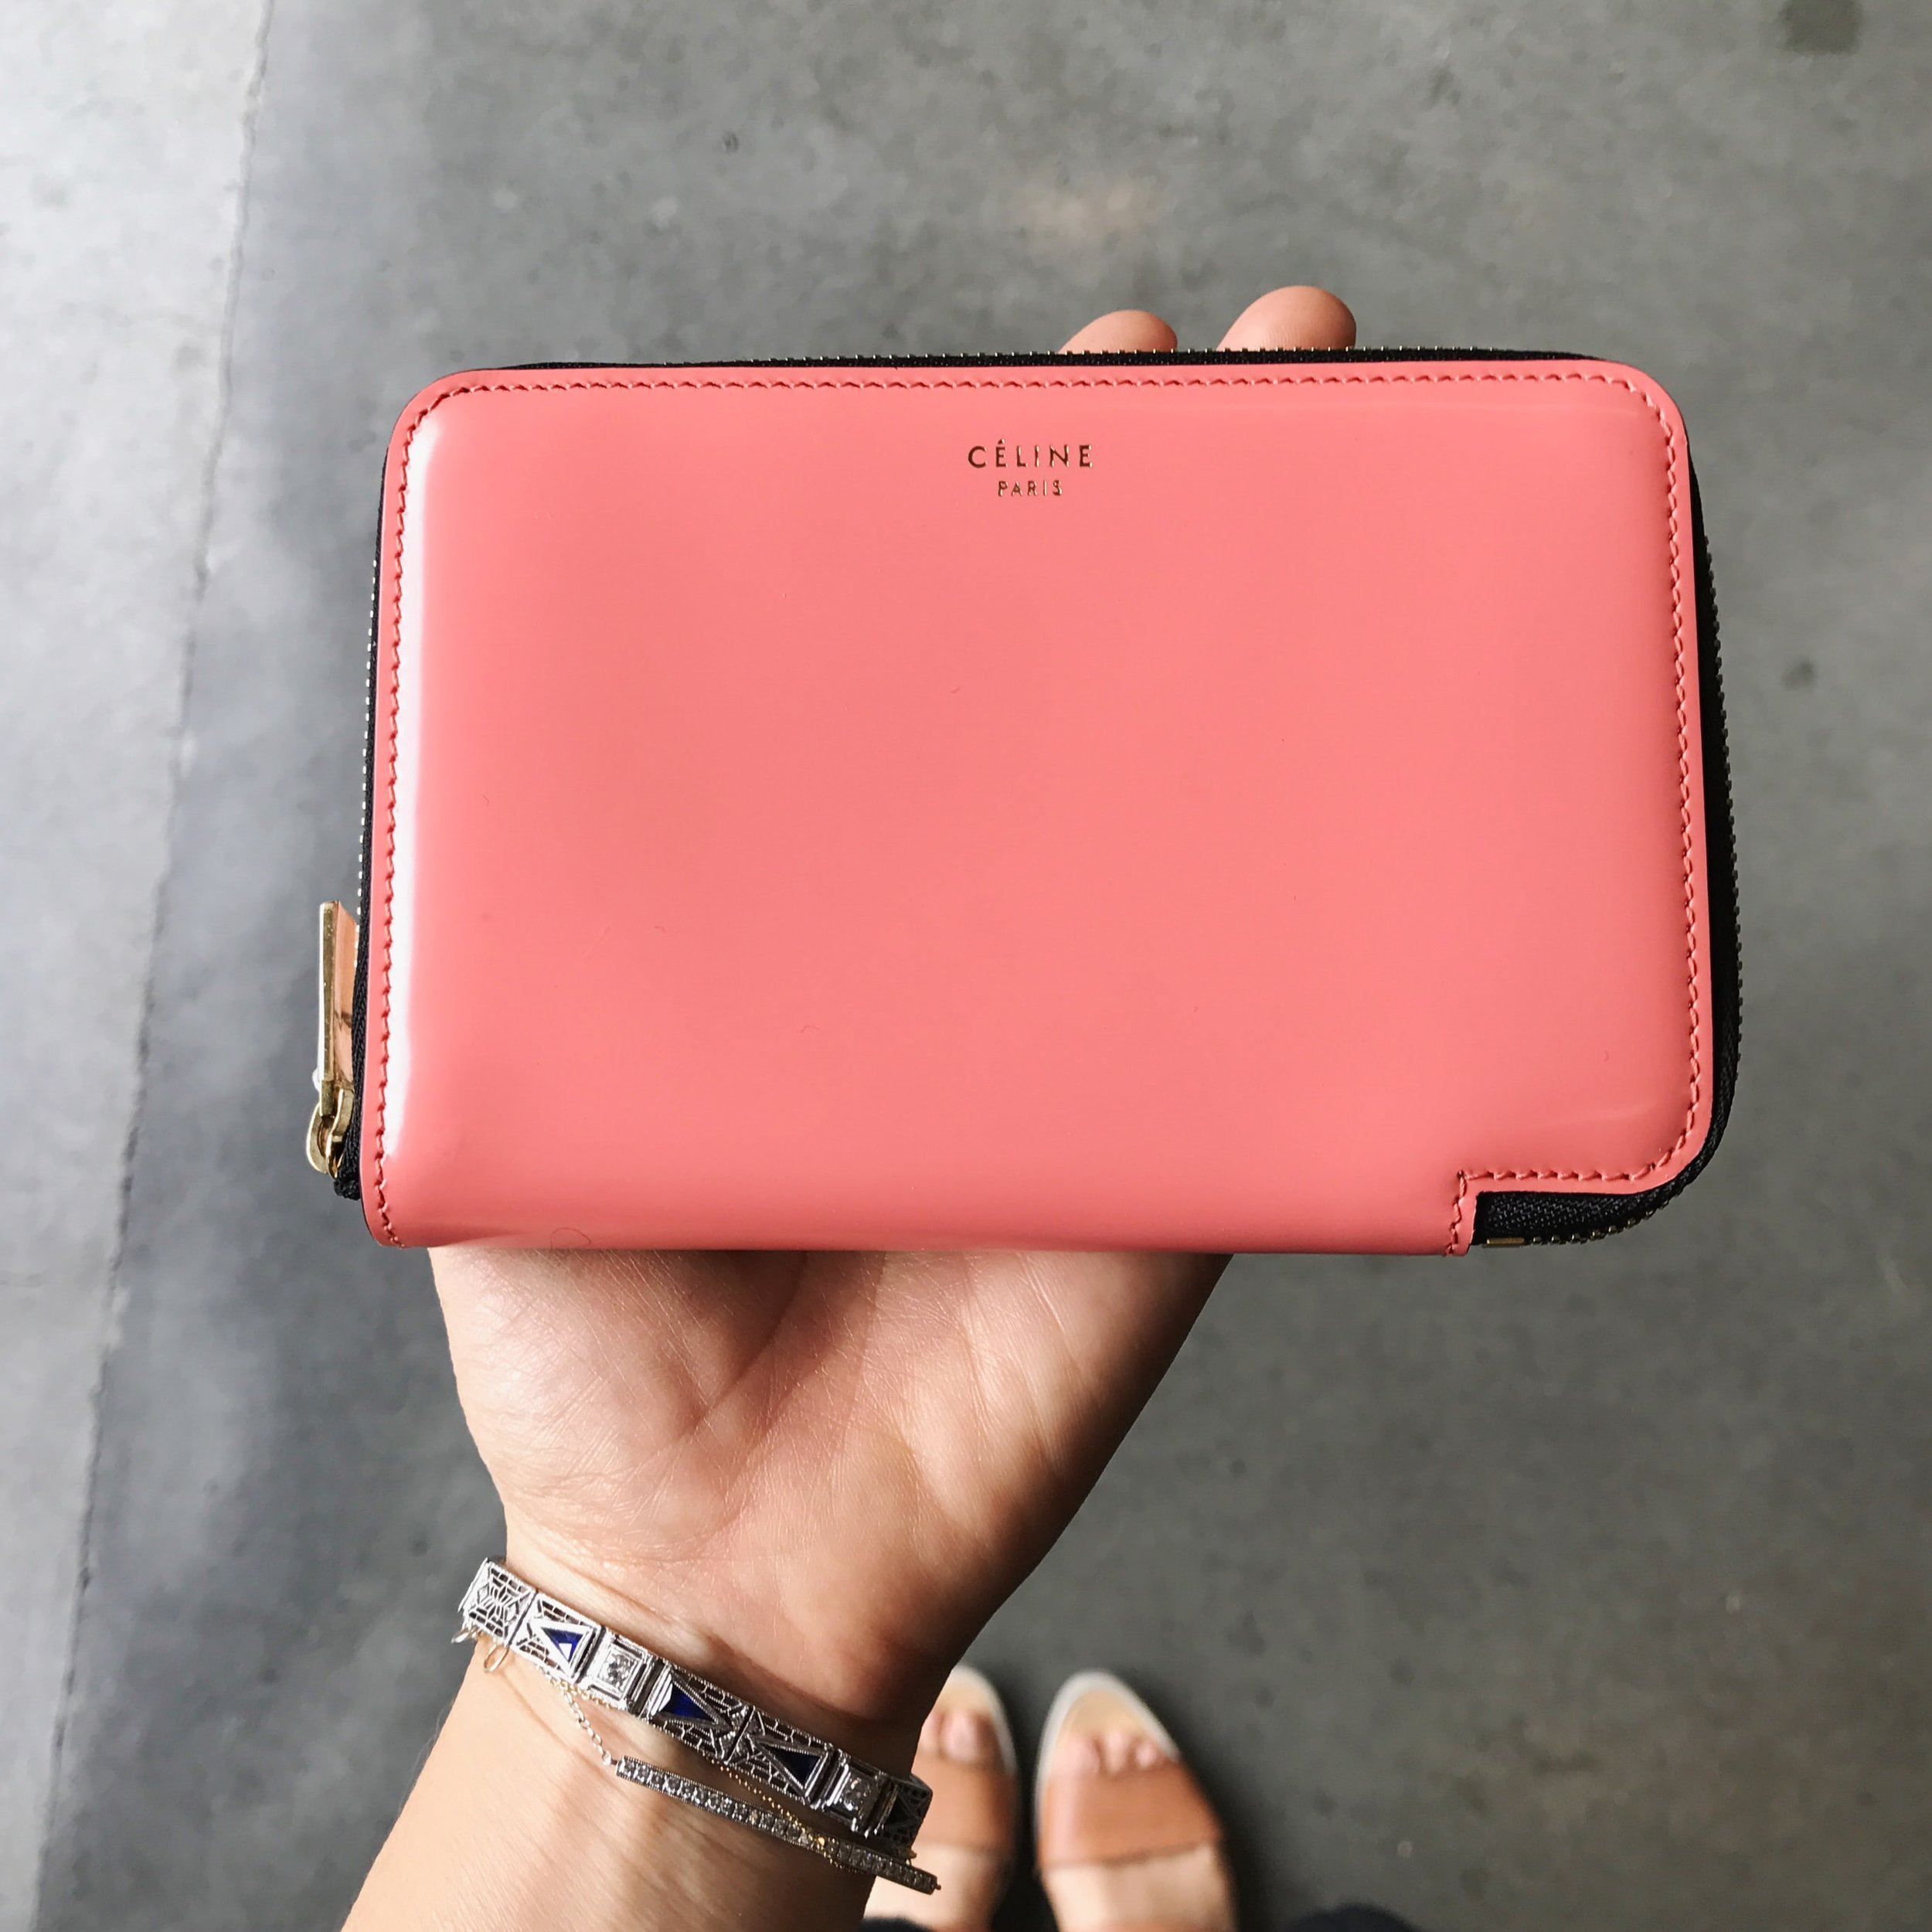 Celine wallet purchased from Fashionphile